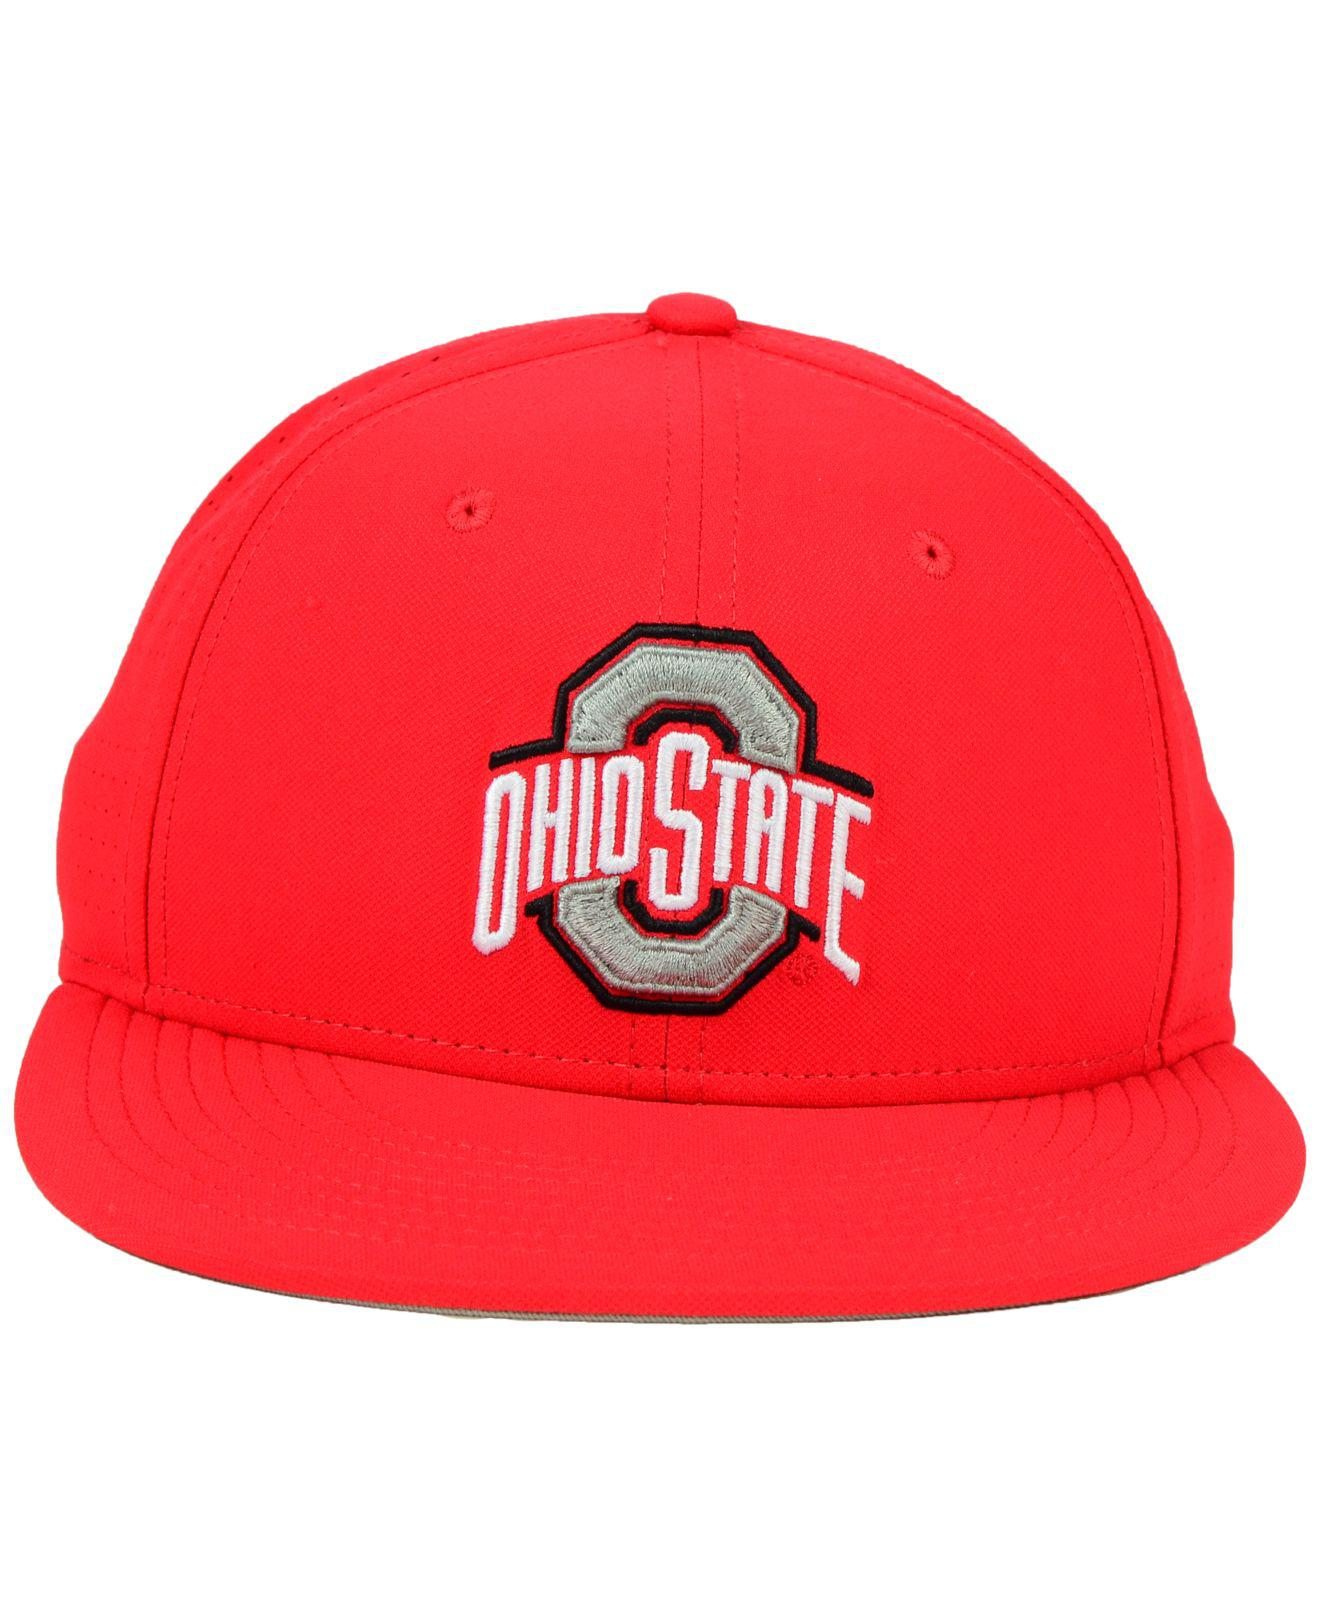 3876f1909d4 Lyst - Nike Ohio State Buckeyes True Vapor Fitted Cap in Red for Men